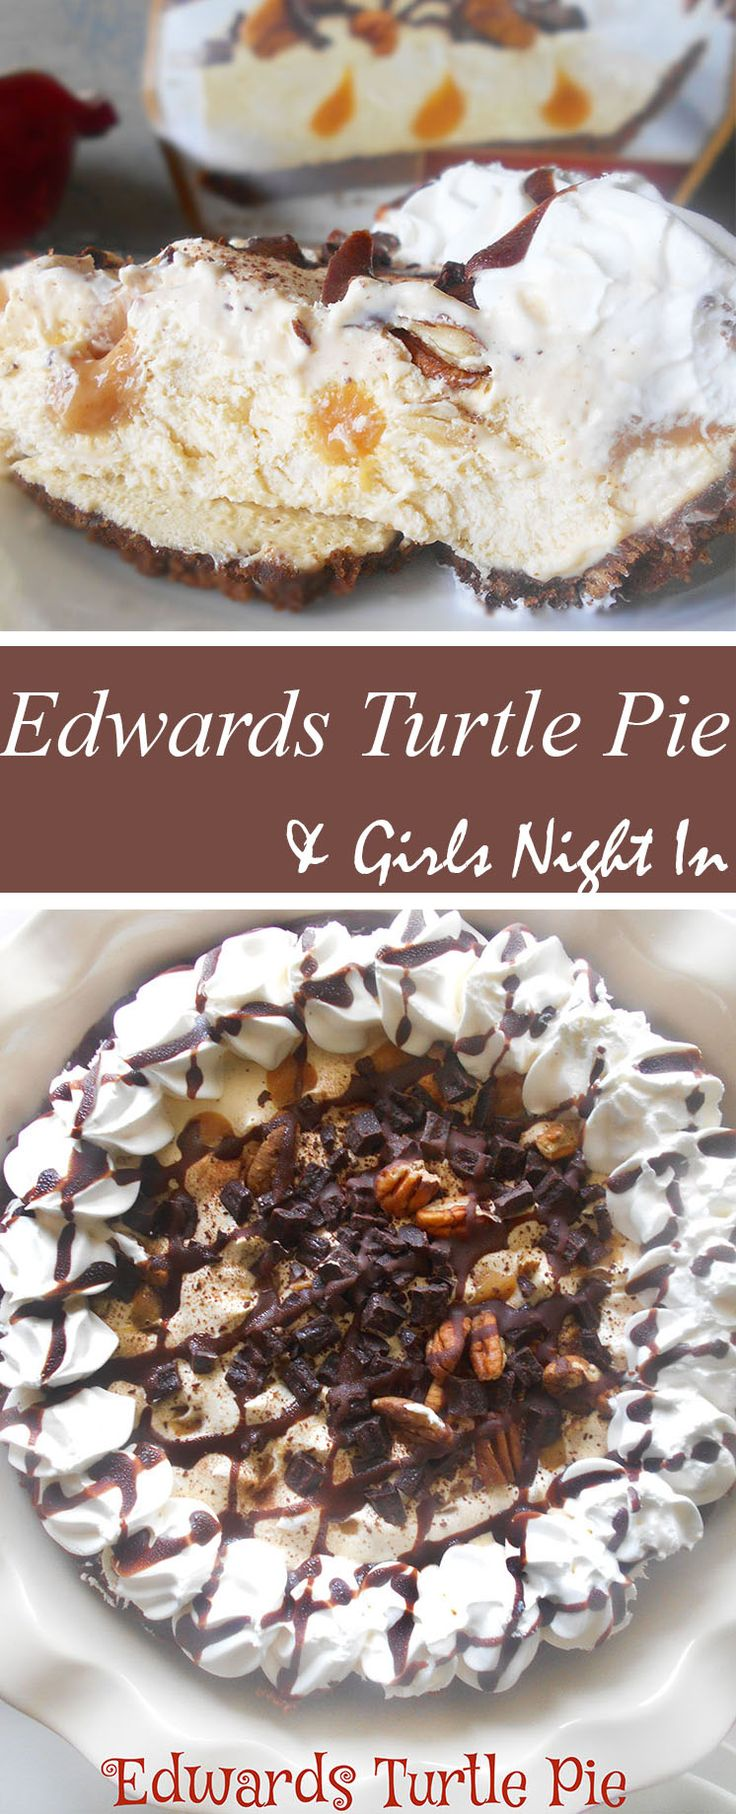 IEdwards Turtle Pie is the perfect pie for a girls night in. They are decadent and comforting. It makes even the dullest person in the world turn wild